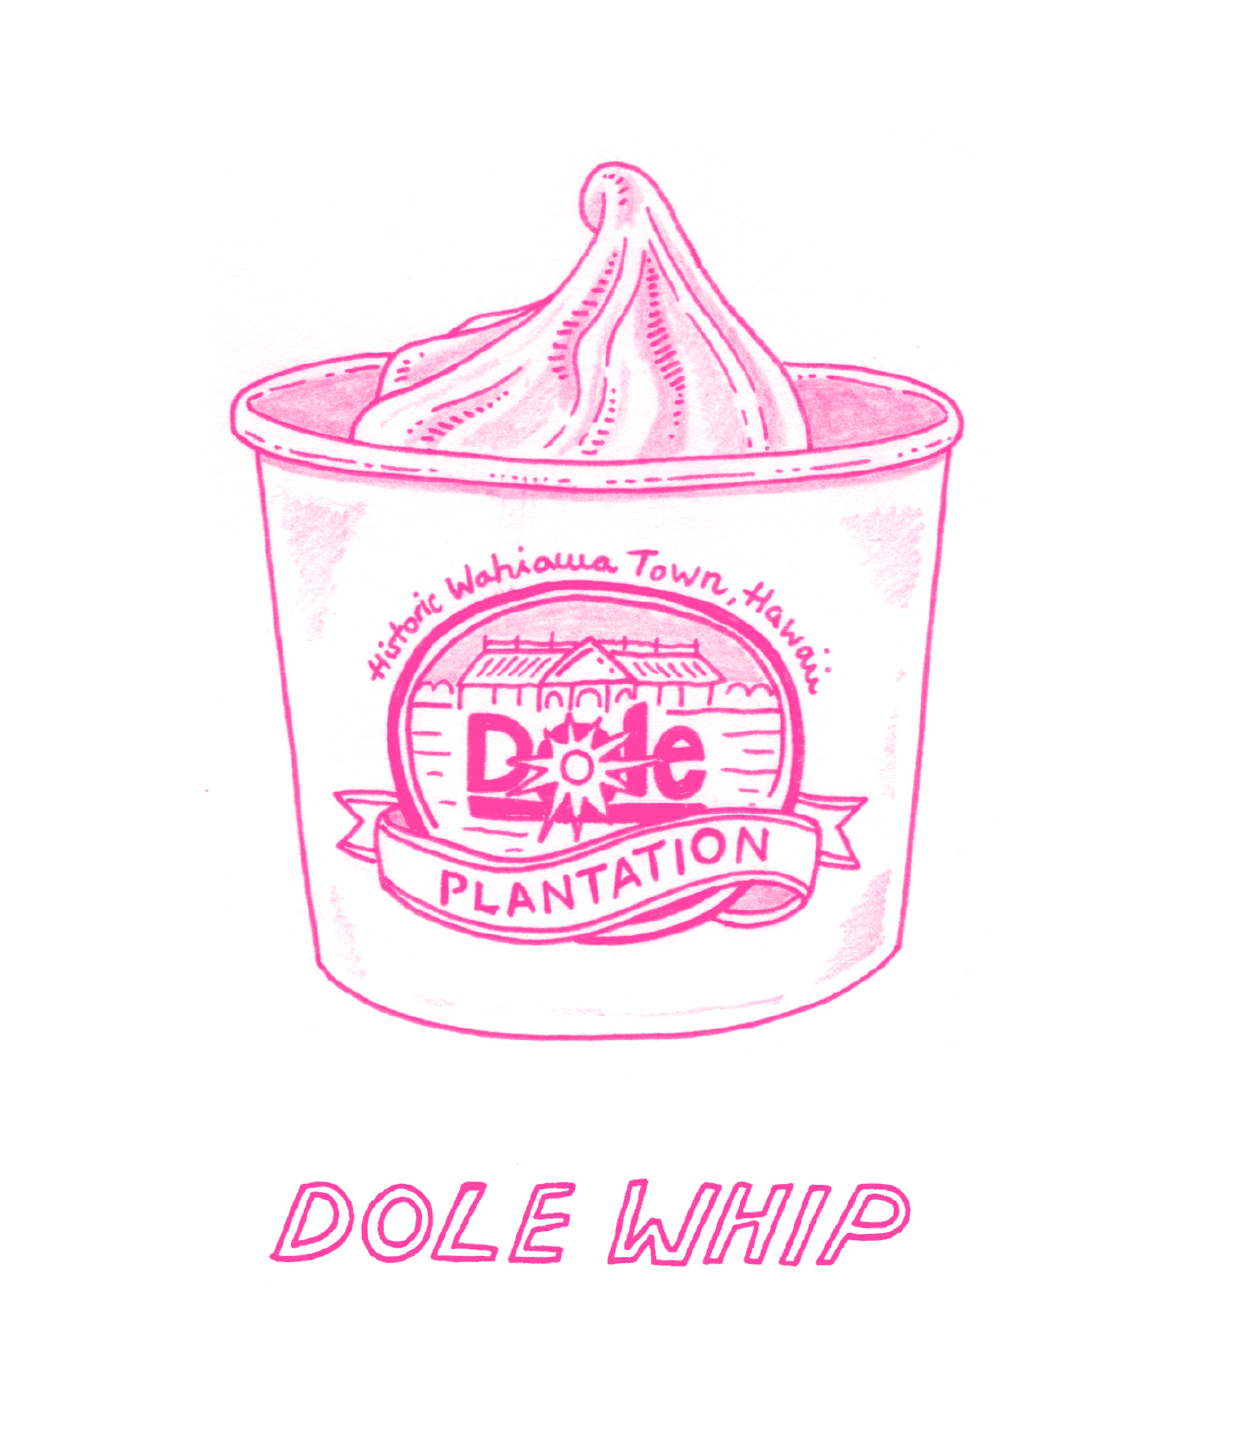 website_dolewhip.jpg